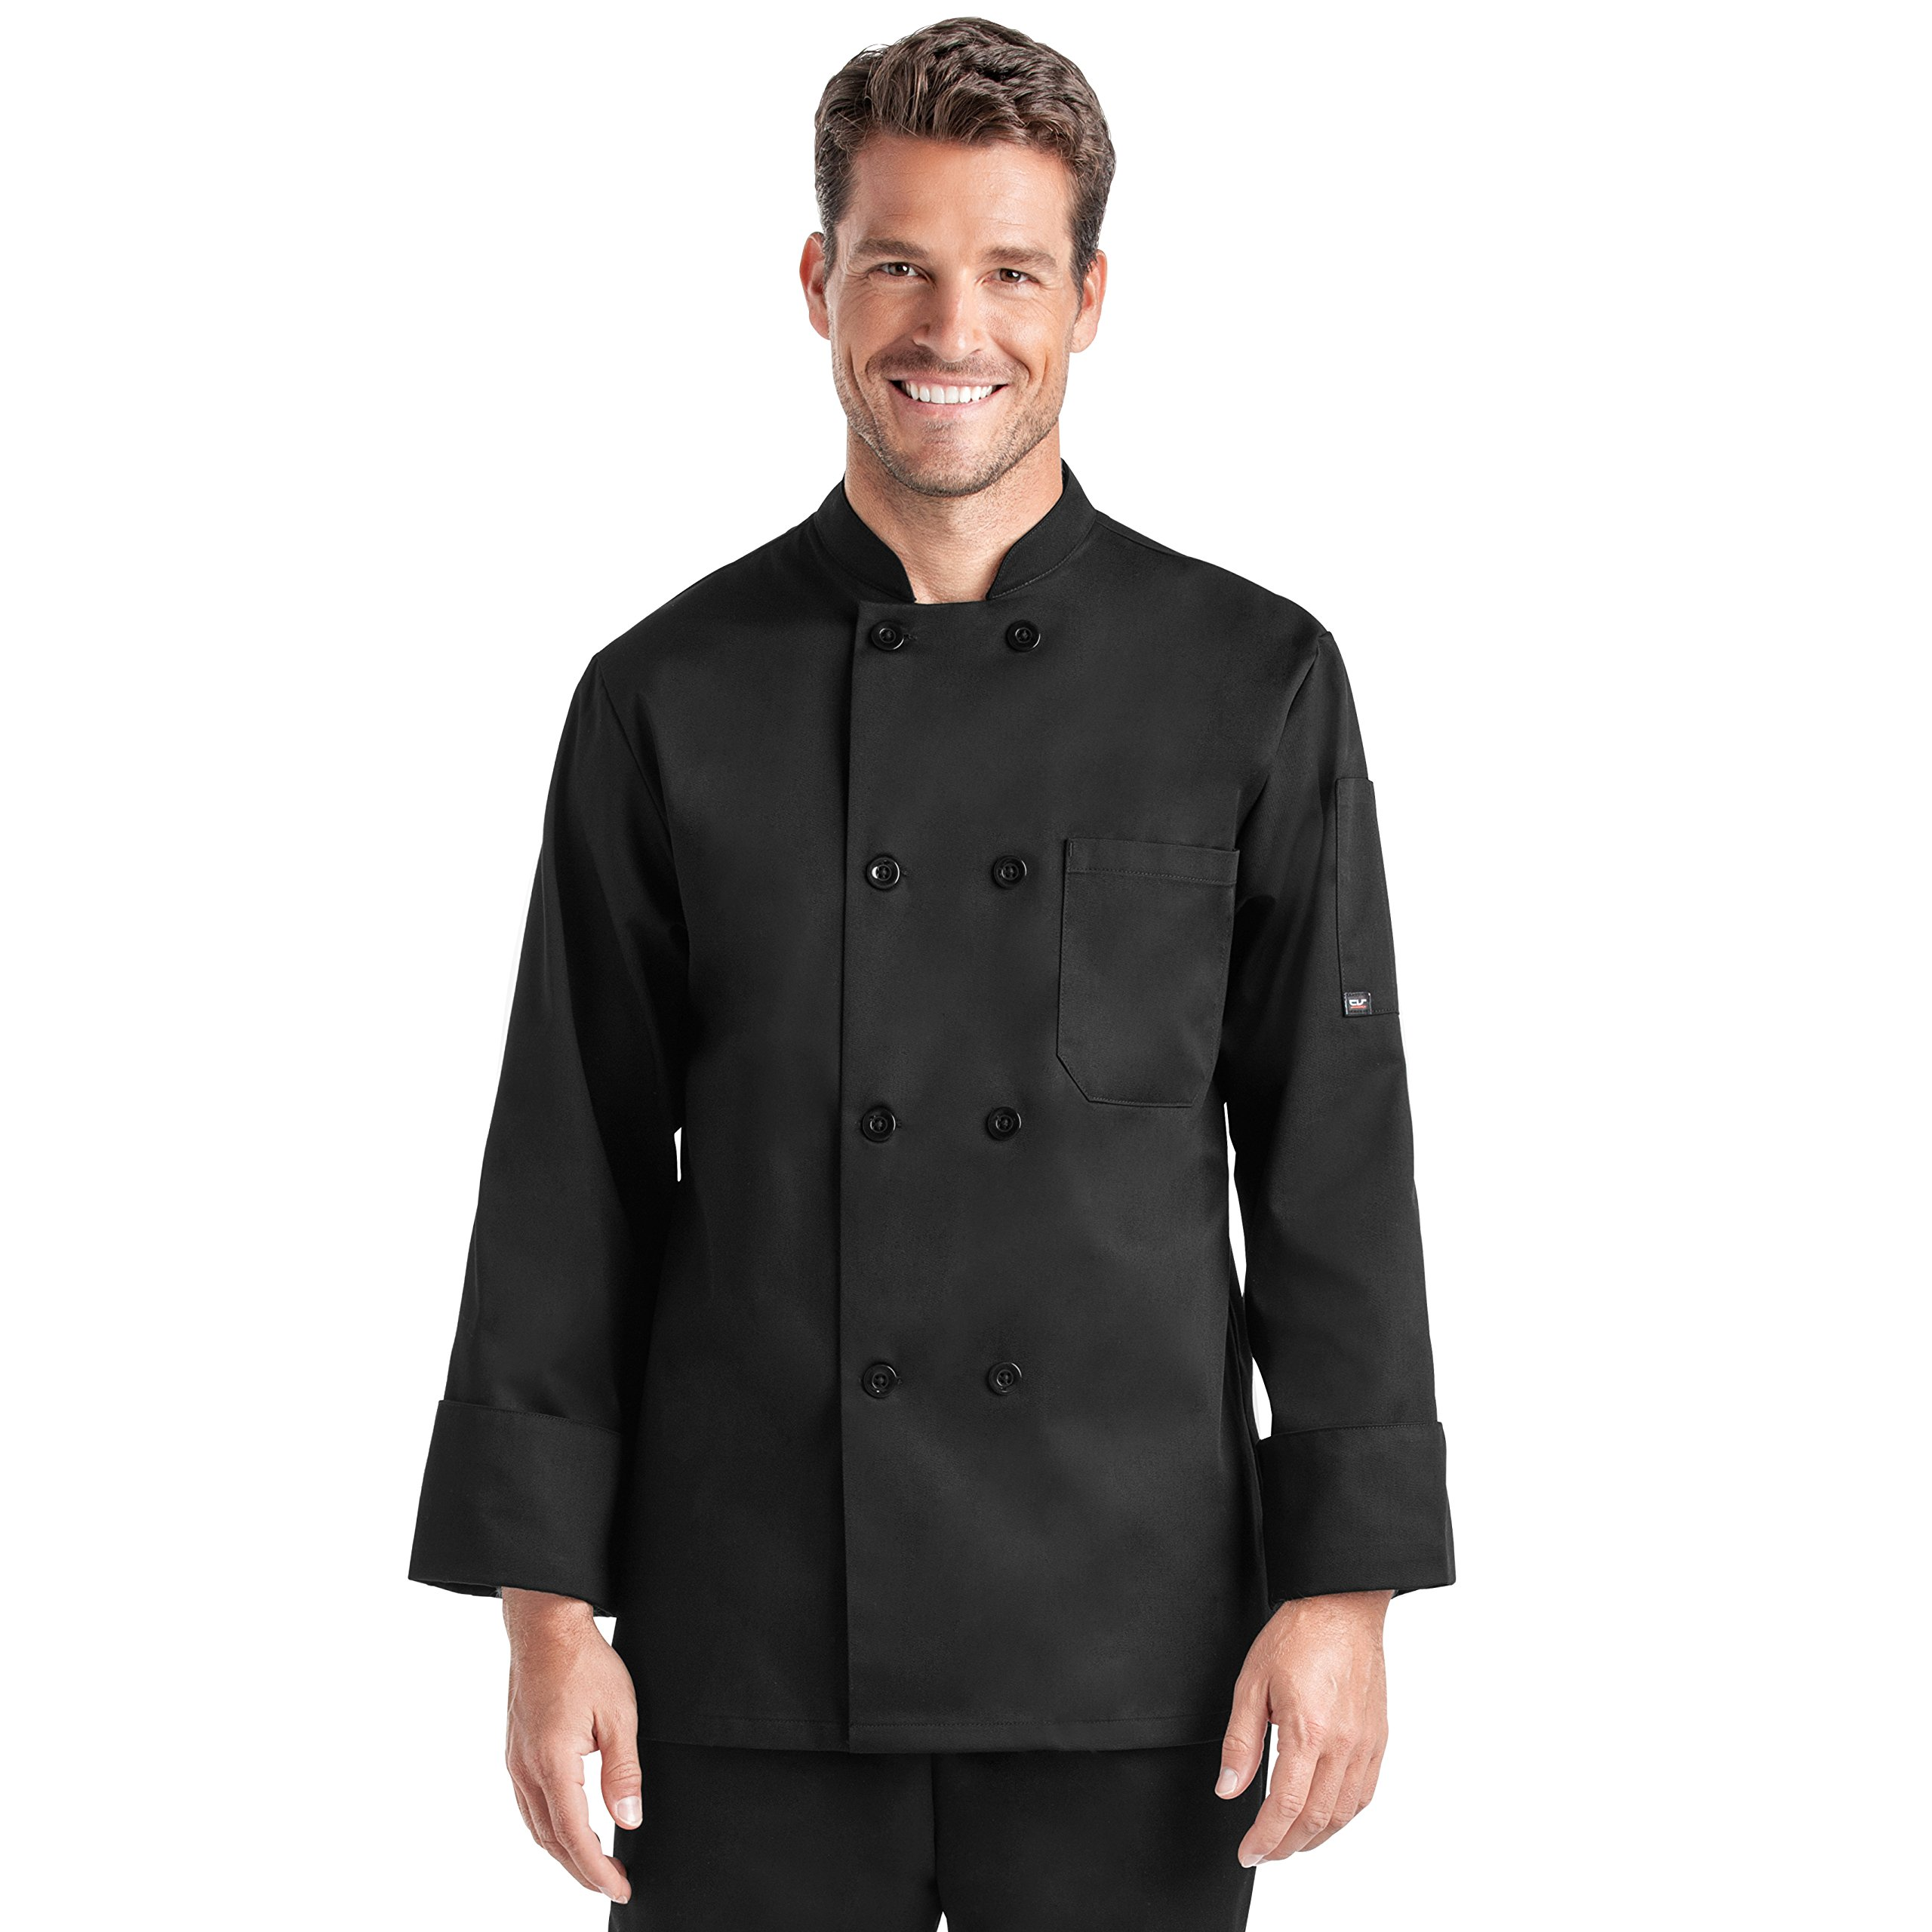 On The Line Men's Long Sleeve Chef Coat (S-2X, 2 Colors) by On The Line (Image #7)